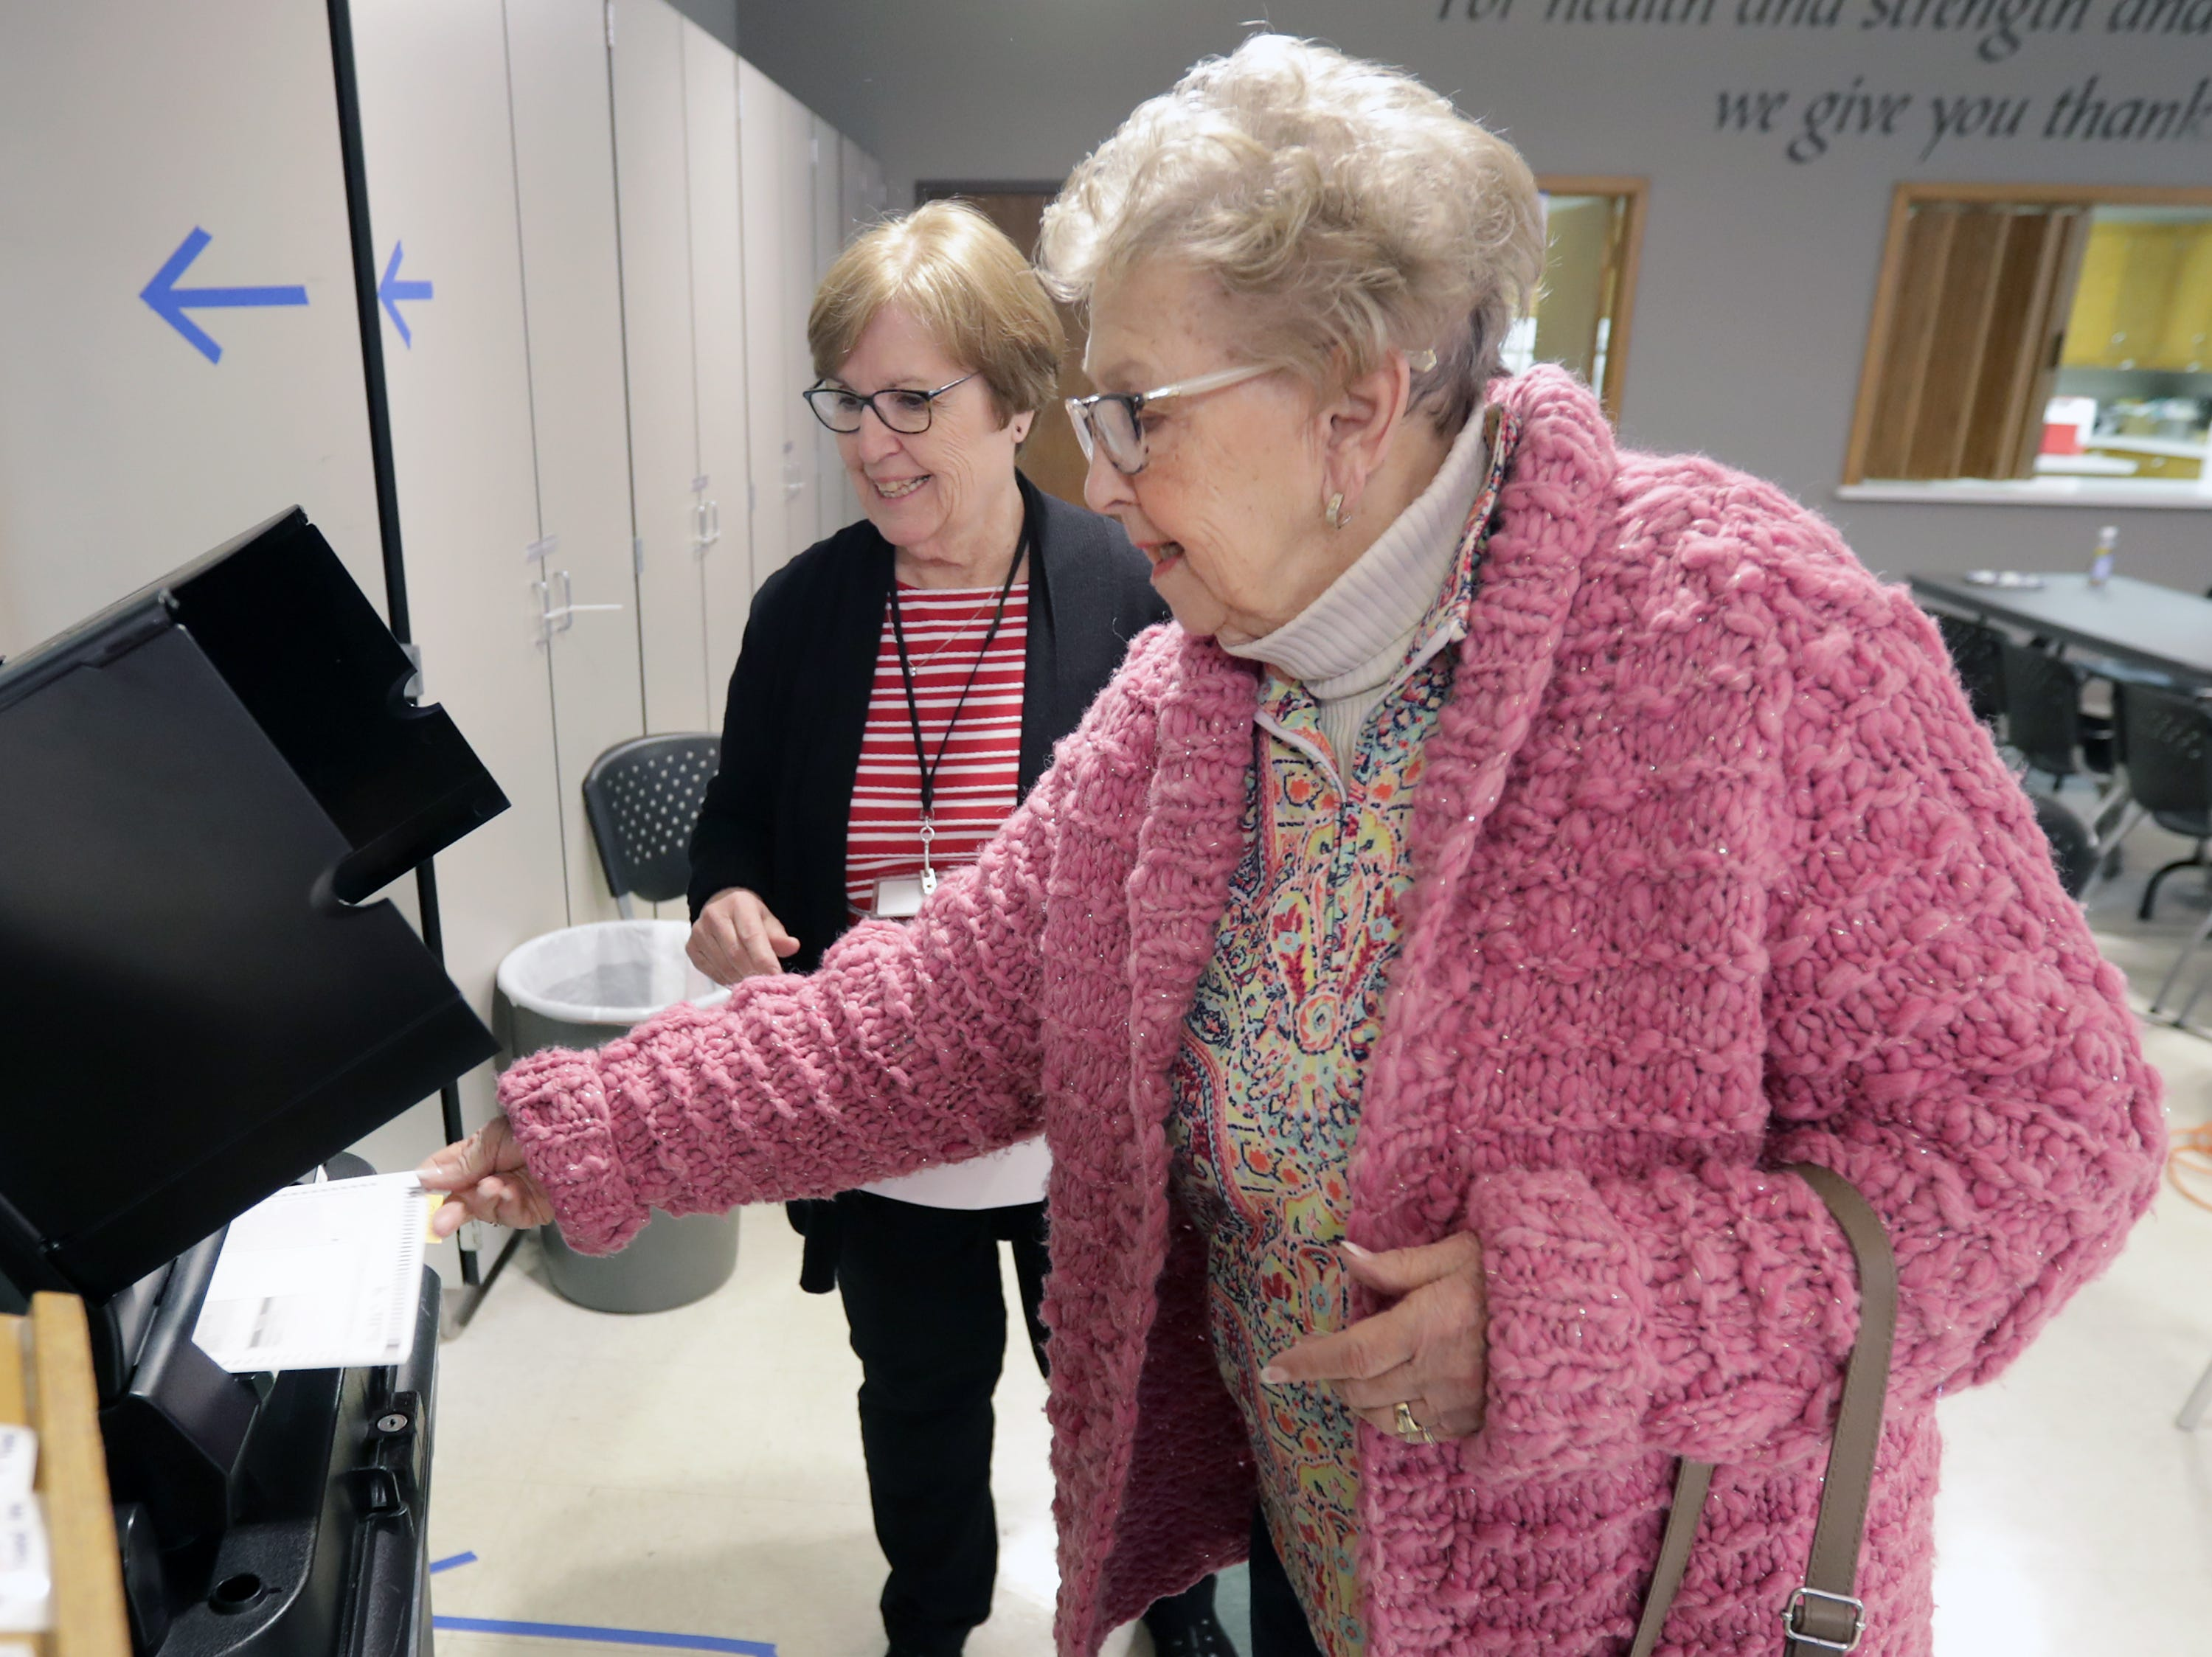 Poll worker Terri Wasco, left, watches Mary Piette submit her ballot as voters head to the polls at Peace Lutheran Church on Tuesday, April 2, 2019, in Neenah, Wis.